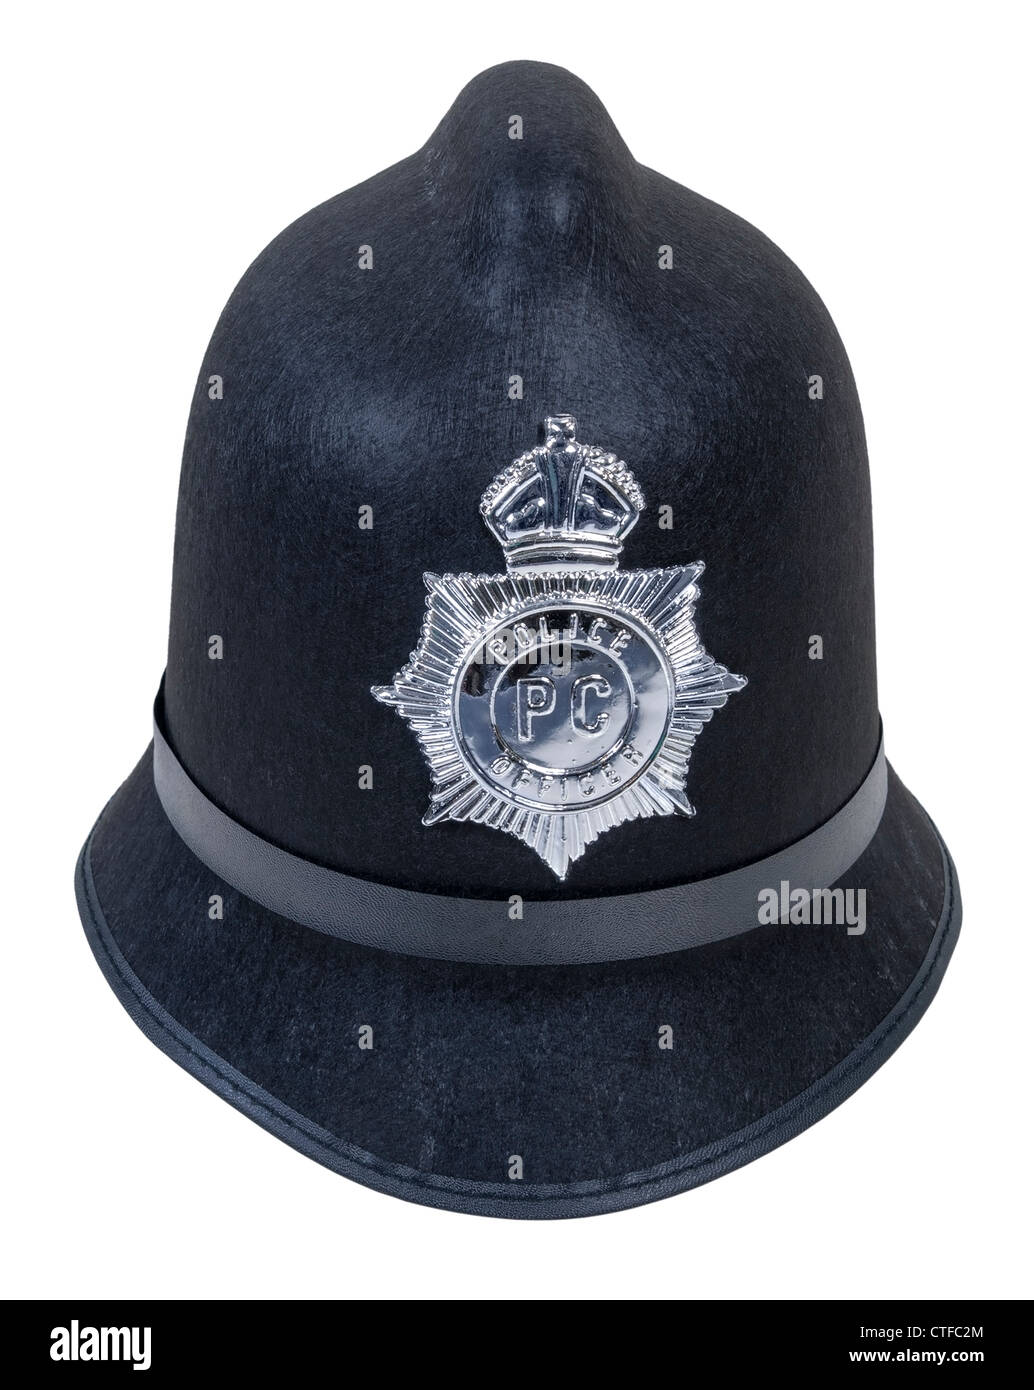 Black English Bobby policeman hat with badge - path included - Stock Image